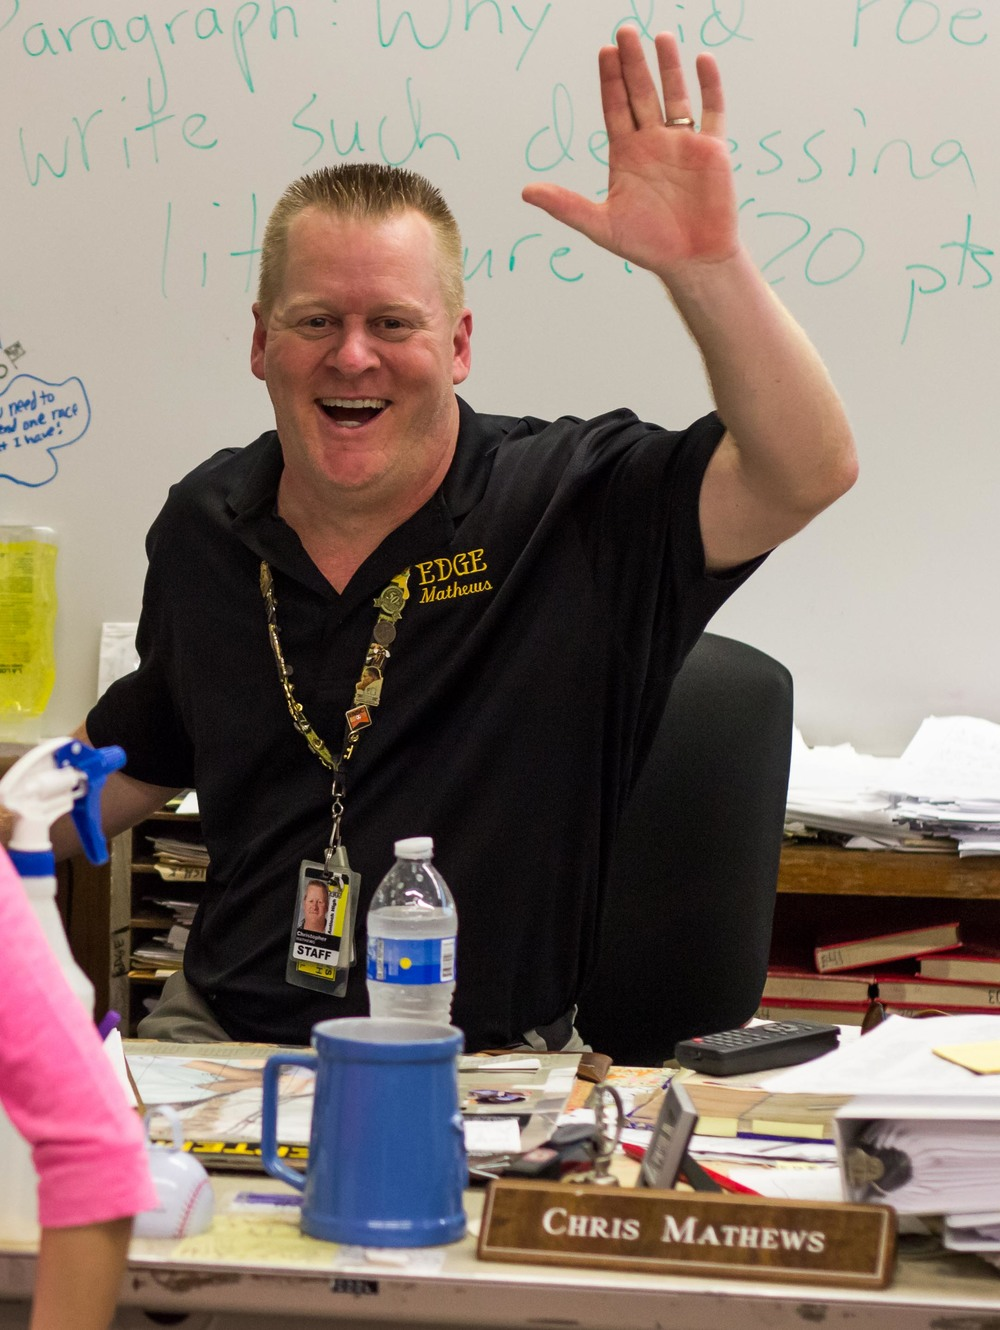 Mr. Mathews waves for the camera during Antioch High's 2014-2015 Back To School Night.